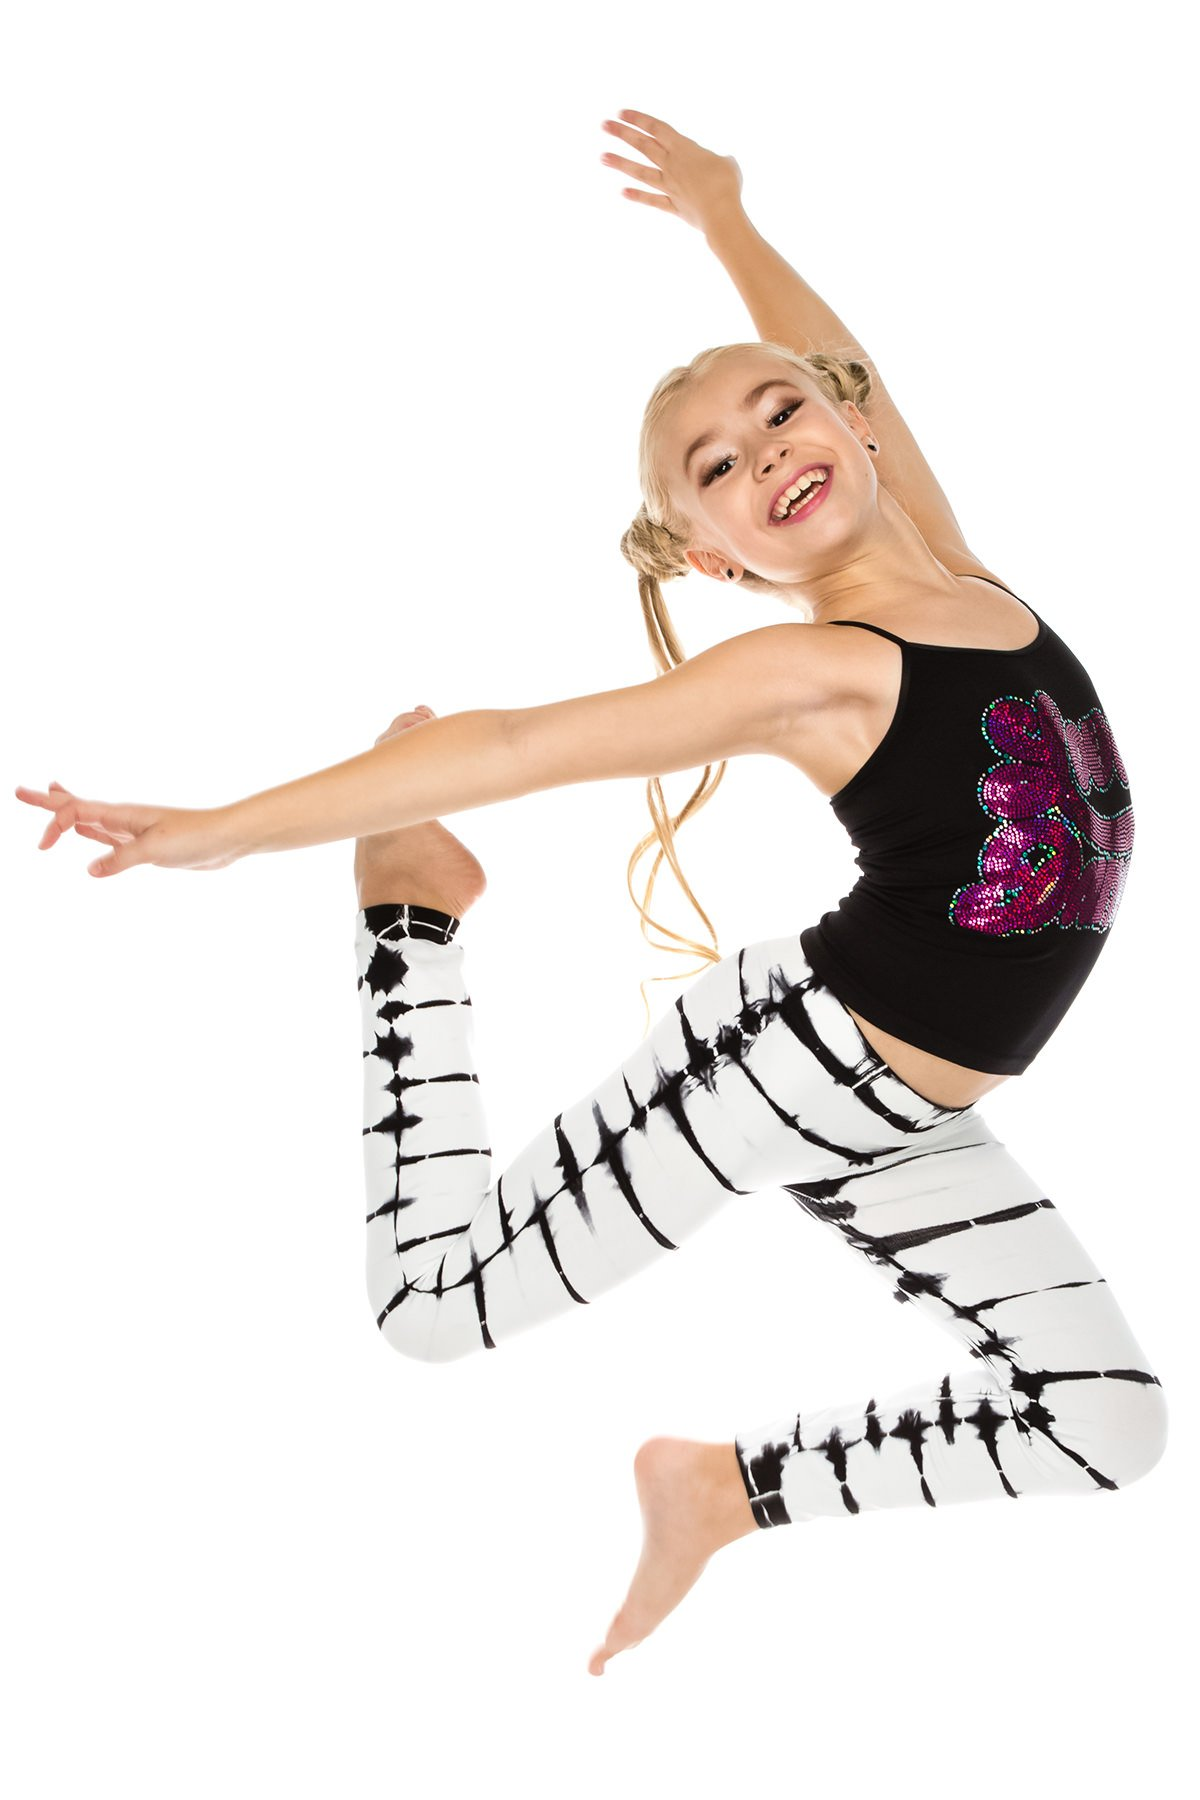 Kurve Kids 2-Piece Dance Outfit - One Size Age 4 To 9 - Made In USA- (Love Dance FS Tie Dye Set, One Size (4-9)) by Kurve (Image #4)